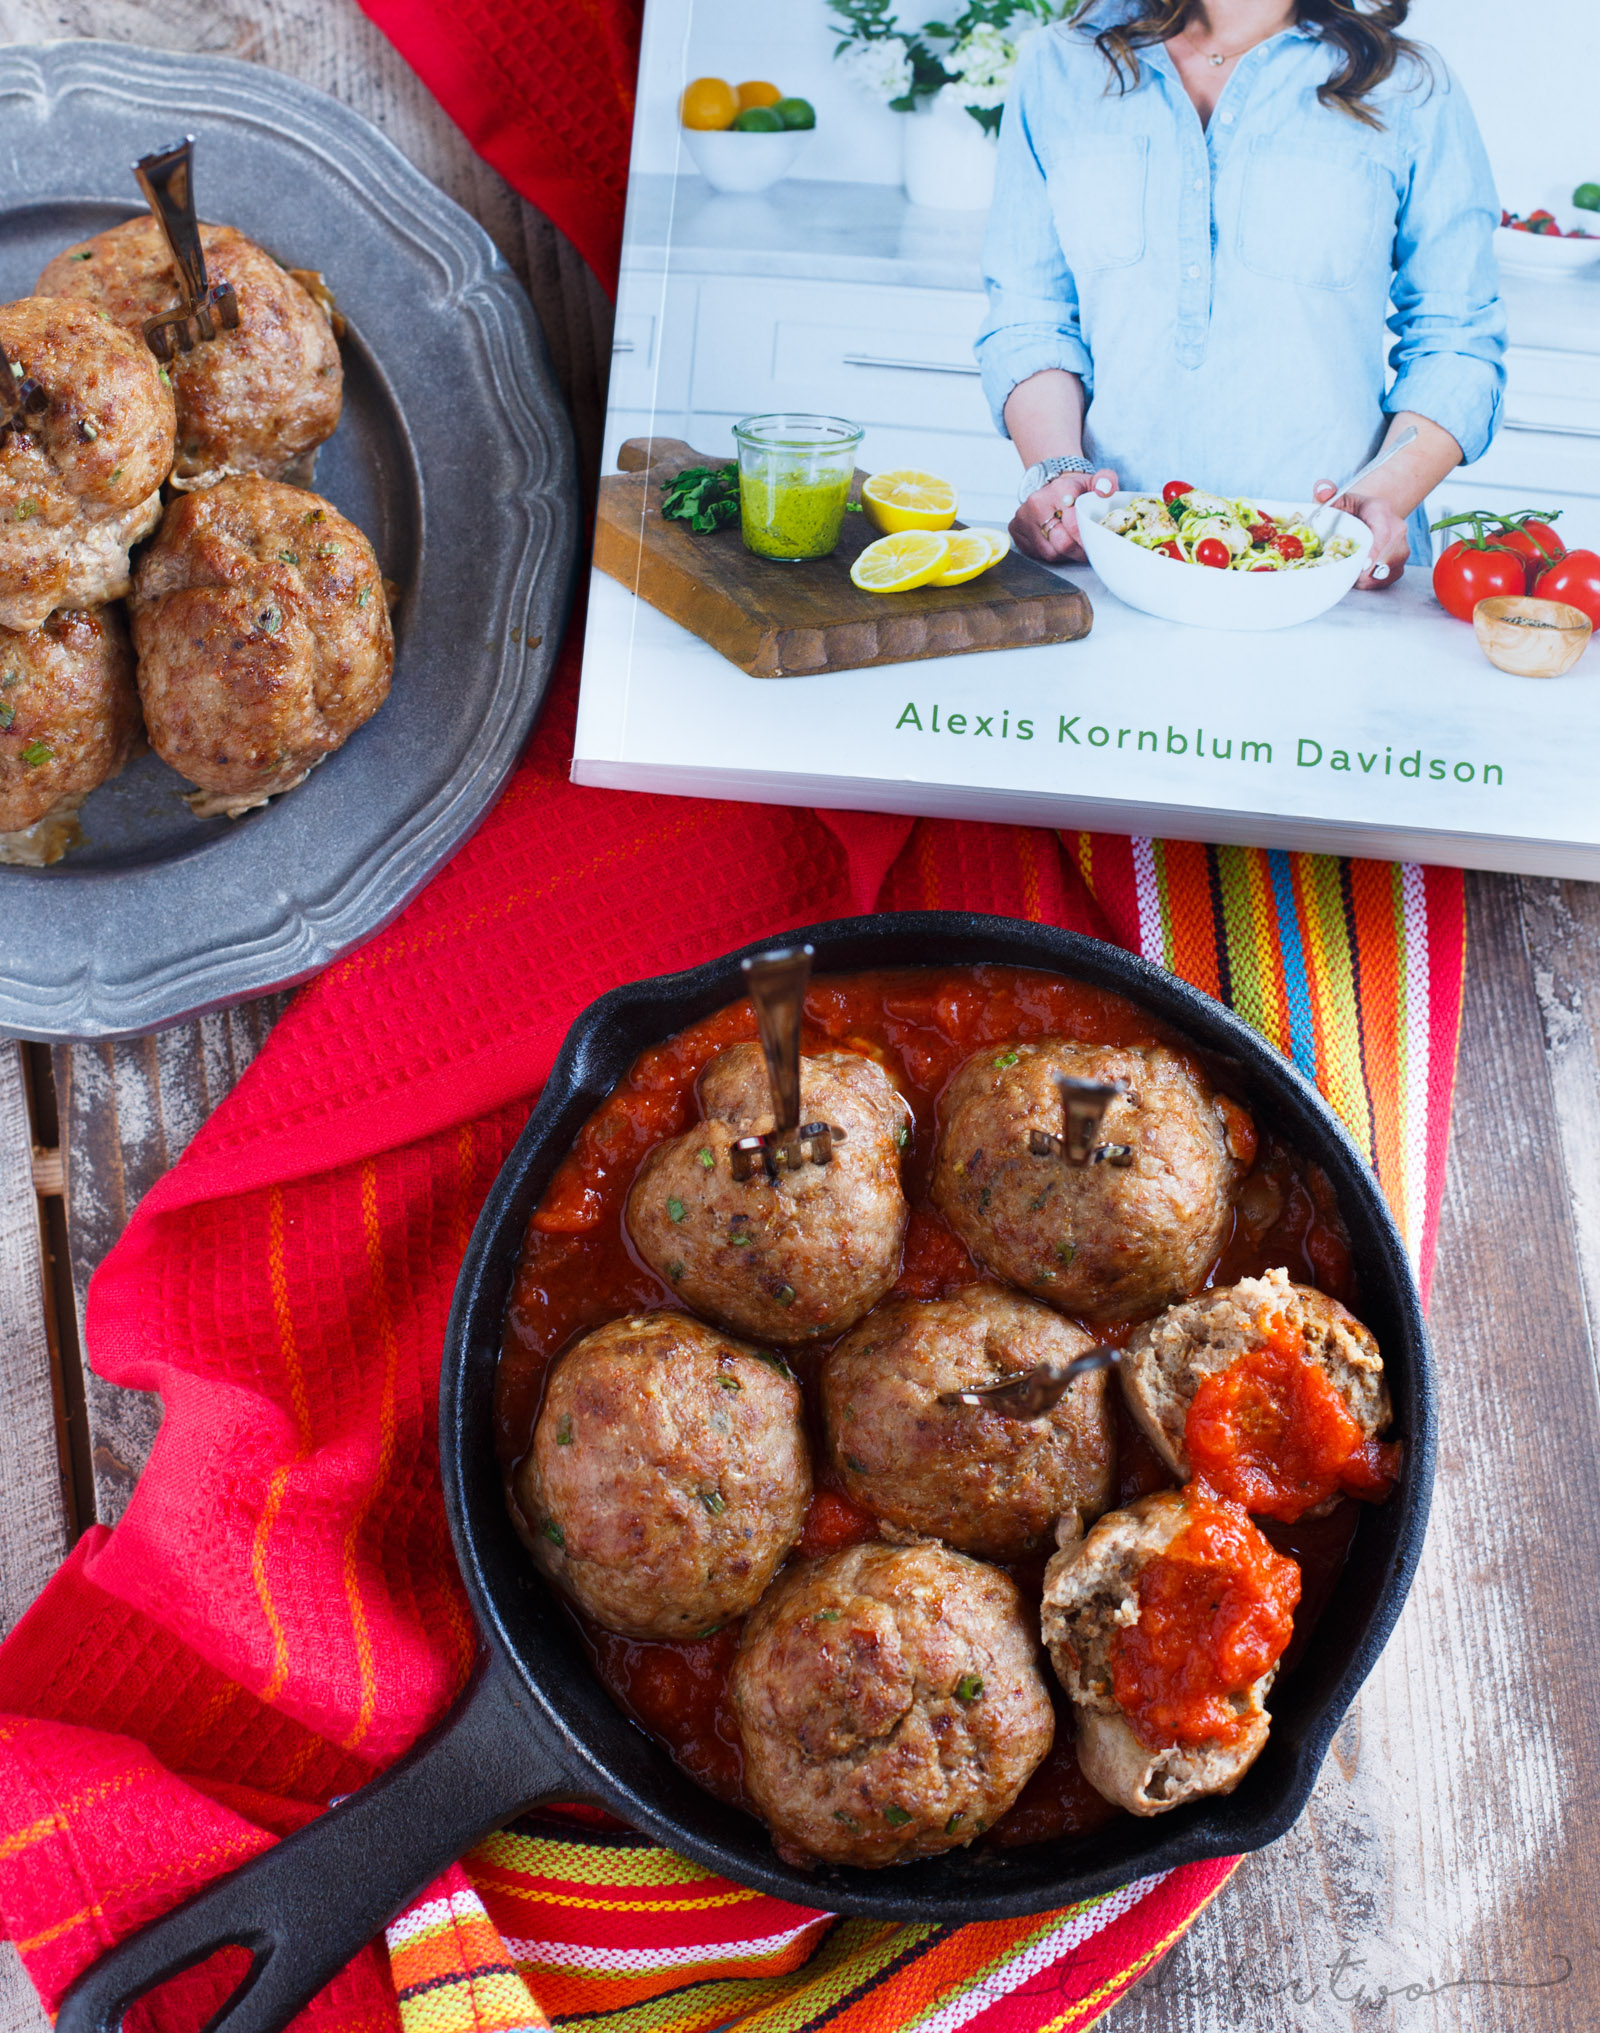 Mexican meatballs are a fun and inexpensive appetizer to throw together in a pinch! Super flavorful and fun little bites that can be served with salsa or guacamole!